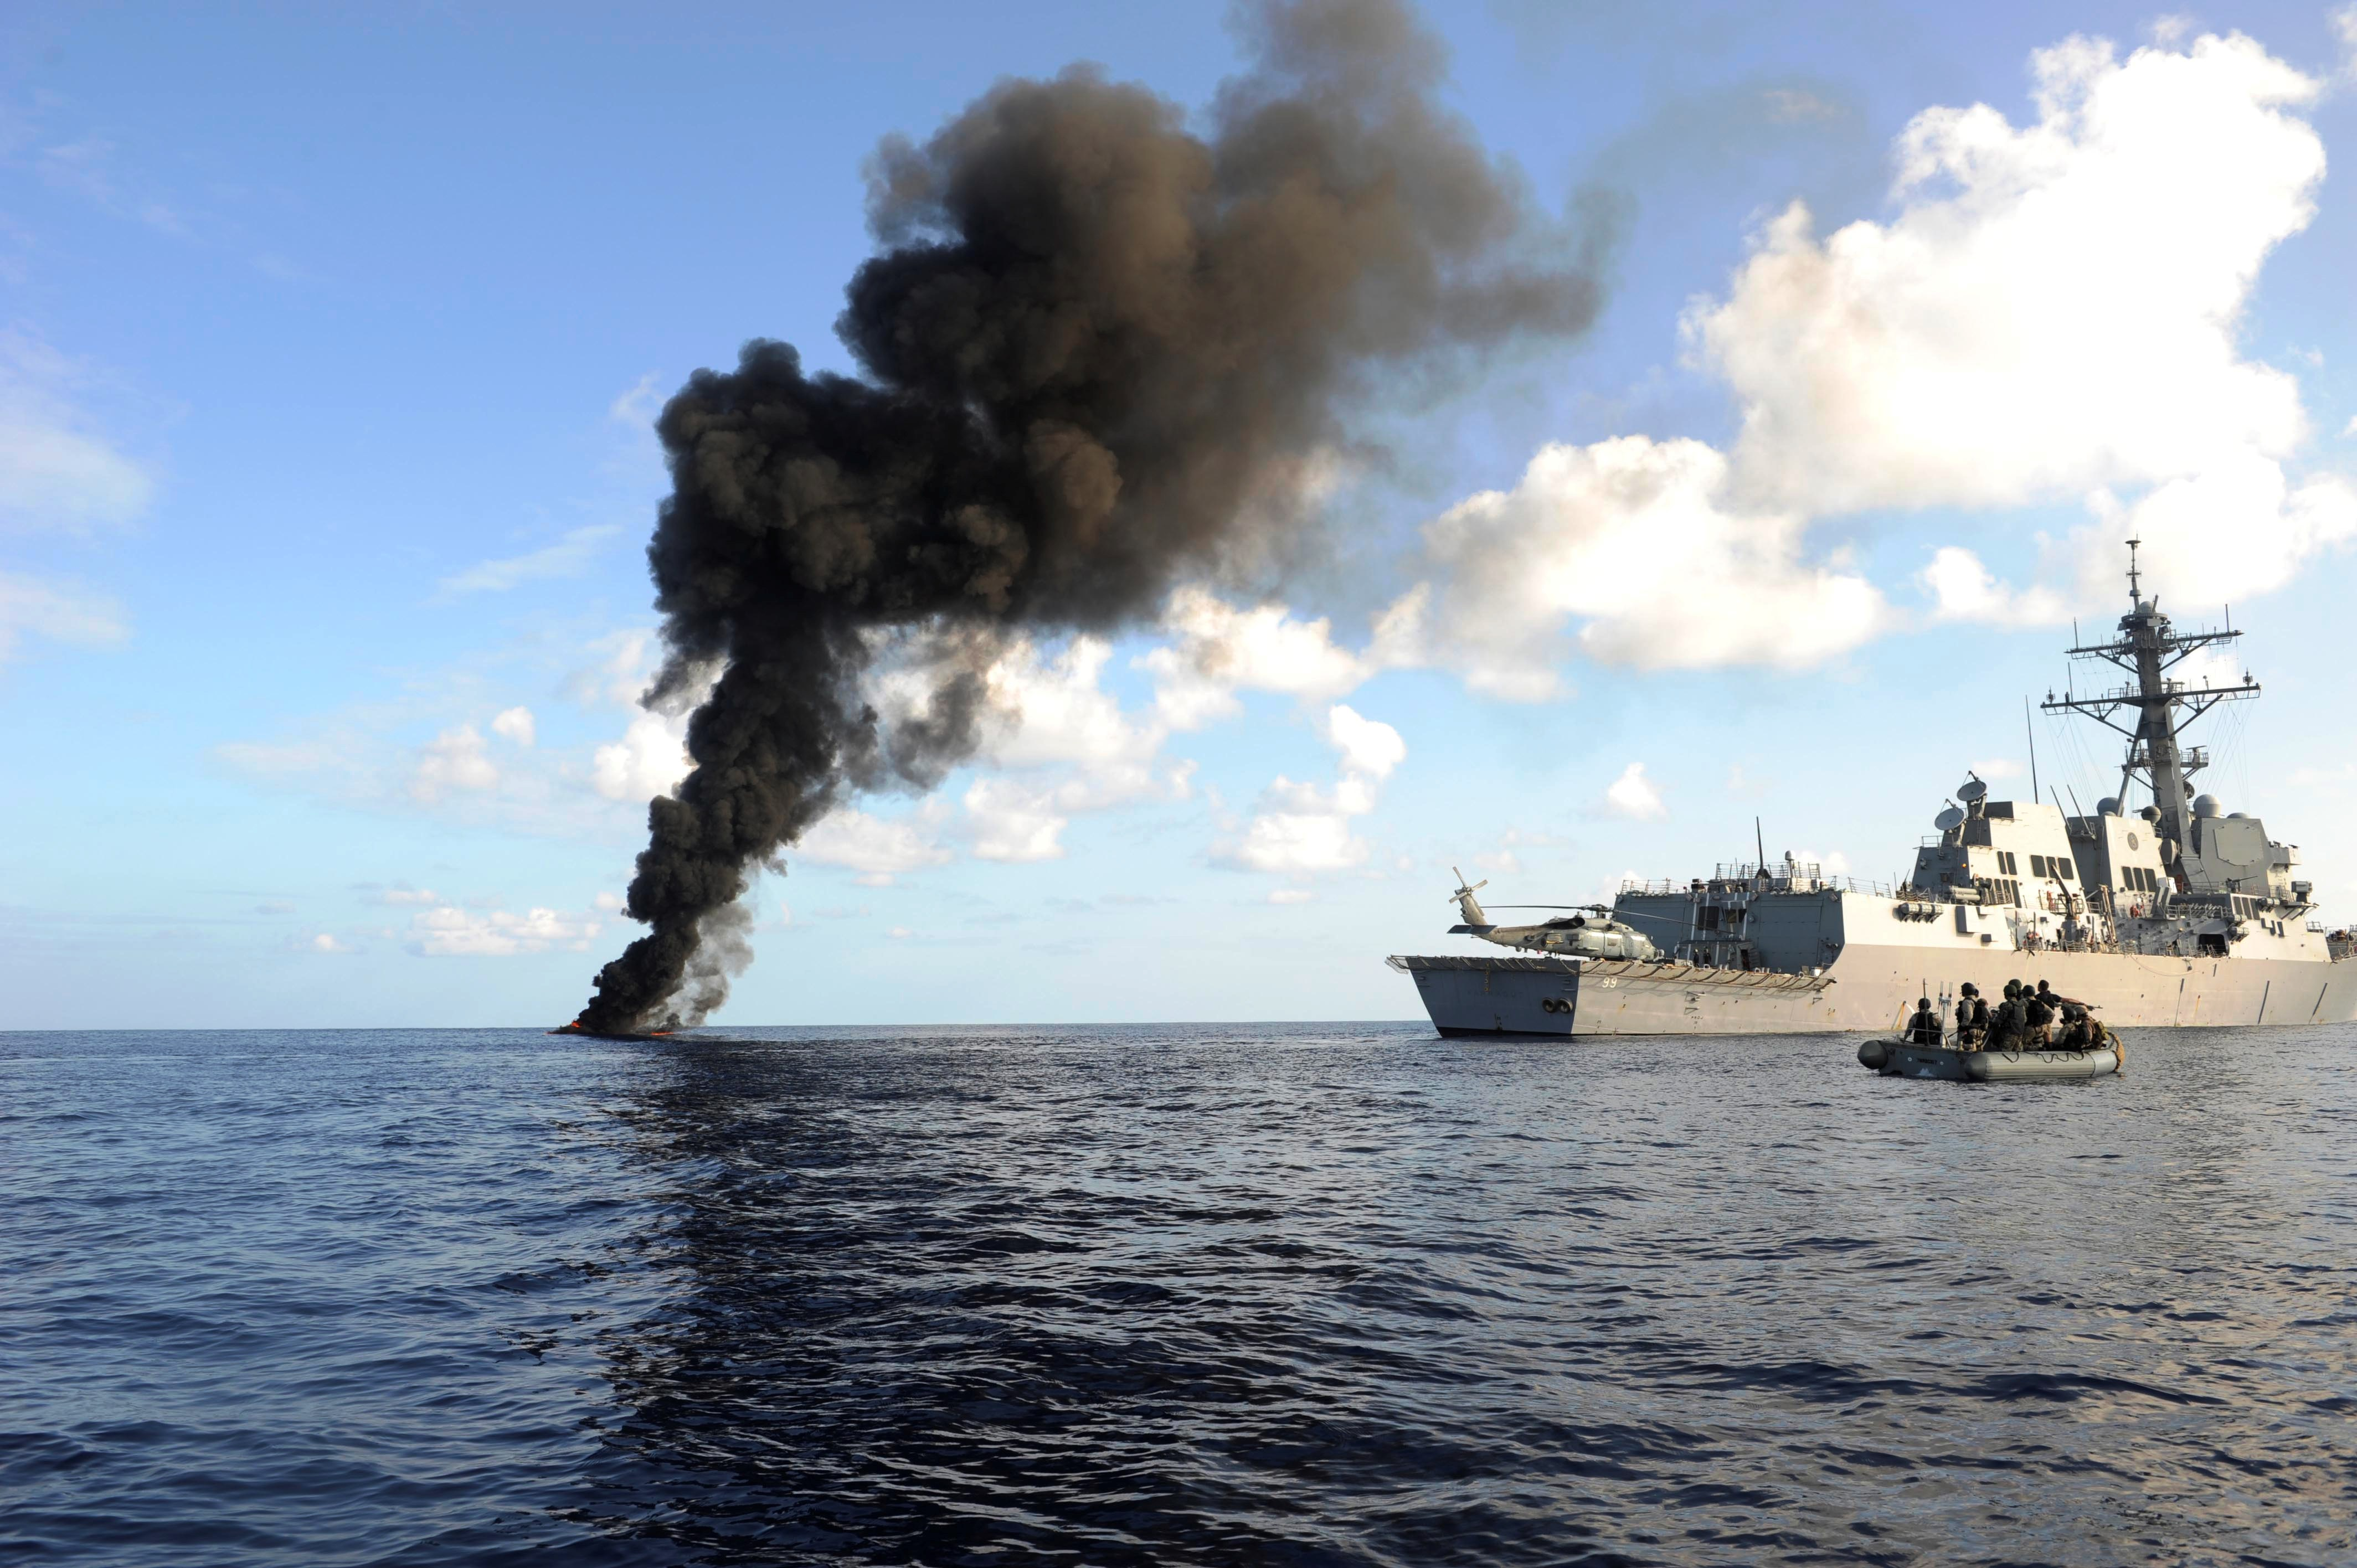 A tall plume of black smoke rises from the blue ocean waters next to a large gray battleship and a small black inflatable boat.